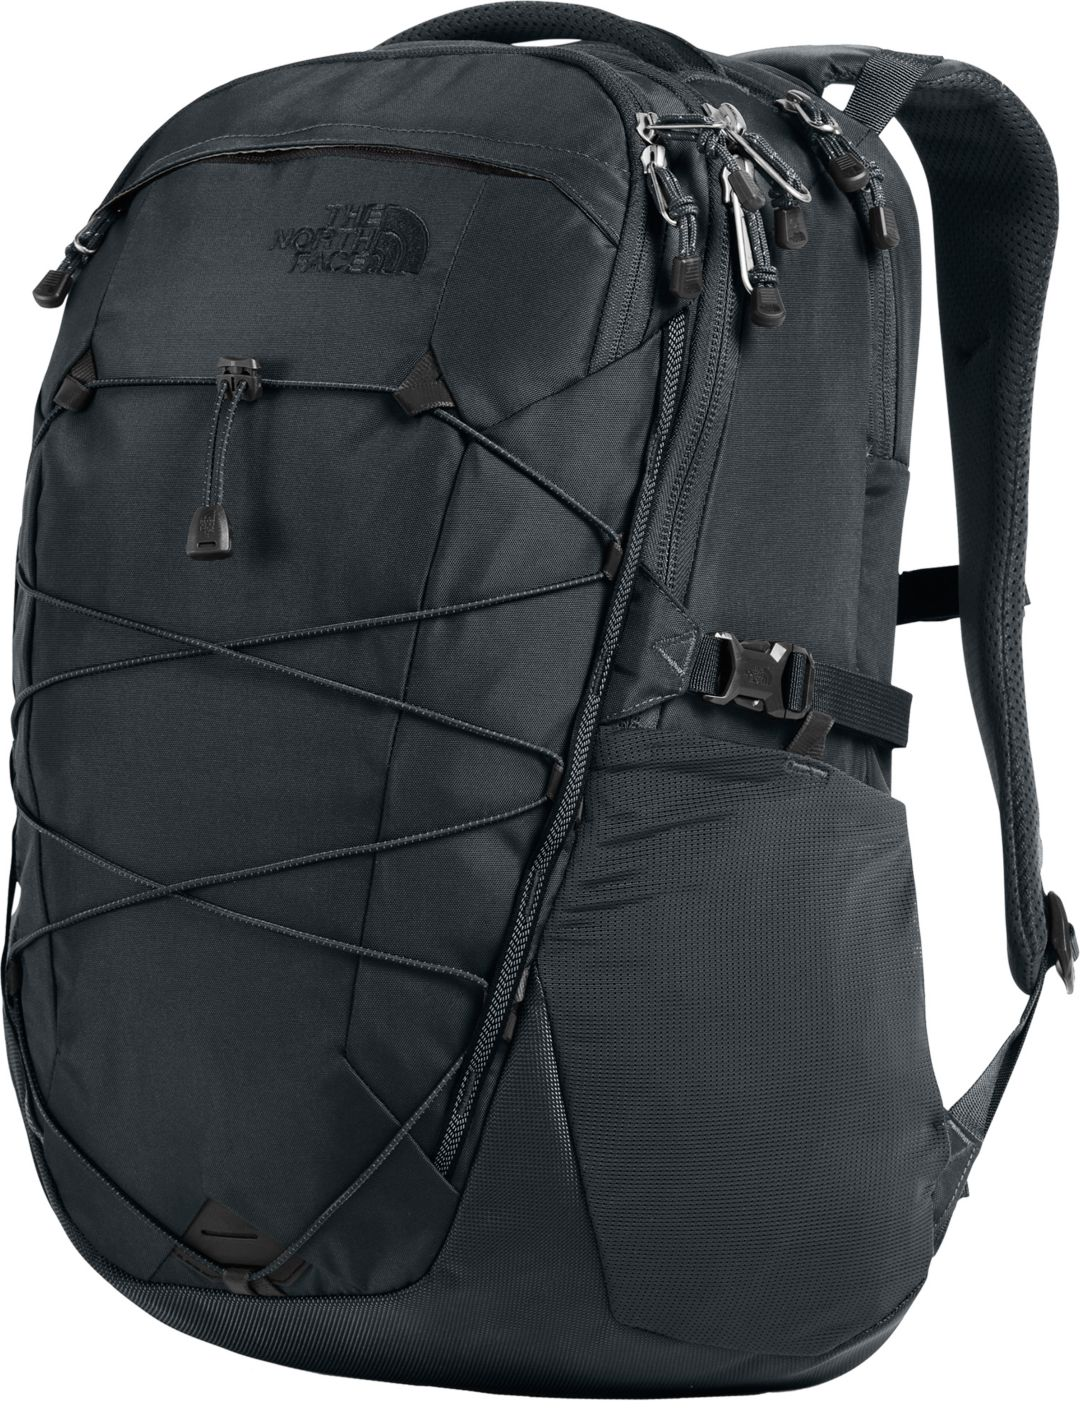 777ed48e0 The North Face Men's Borealis 18 Backpack